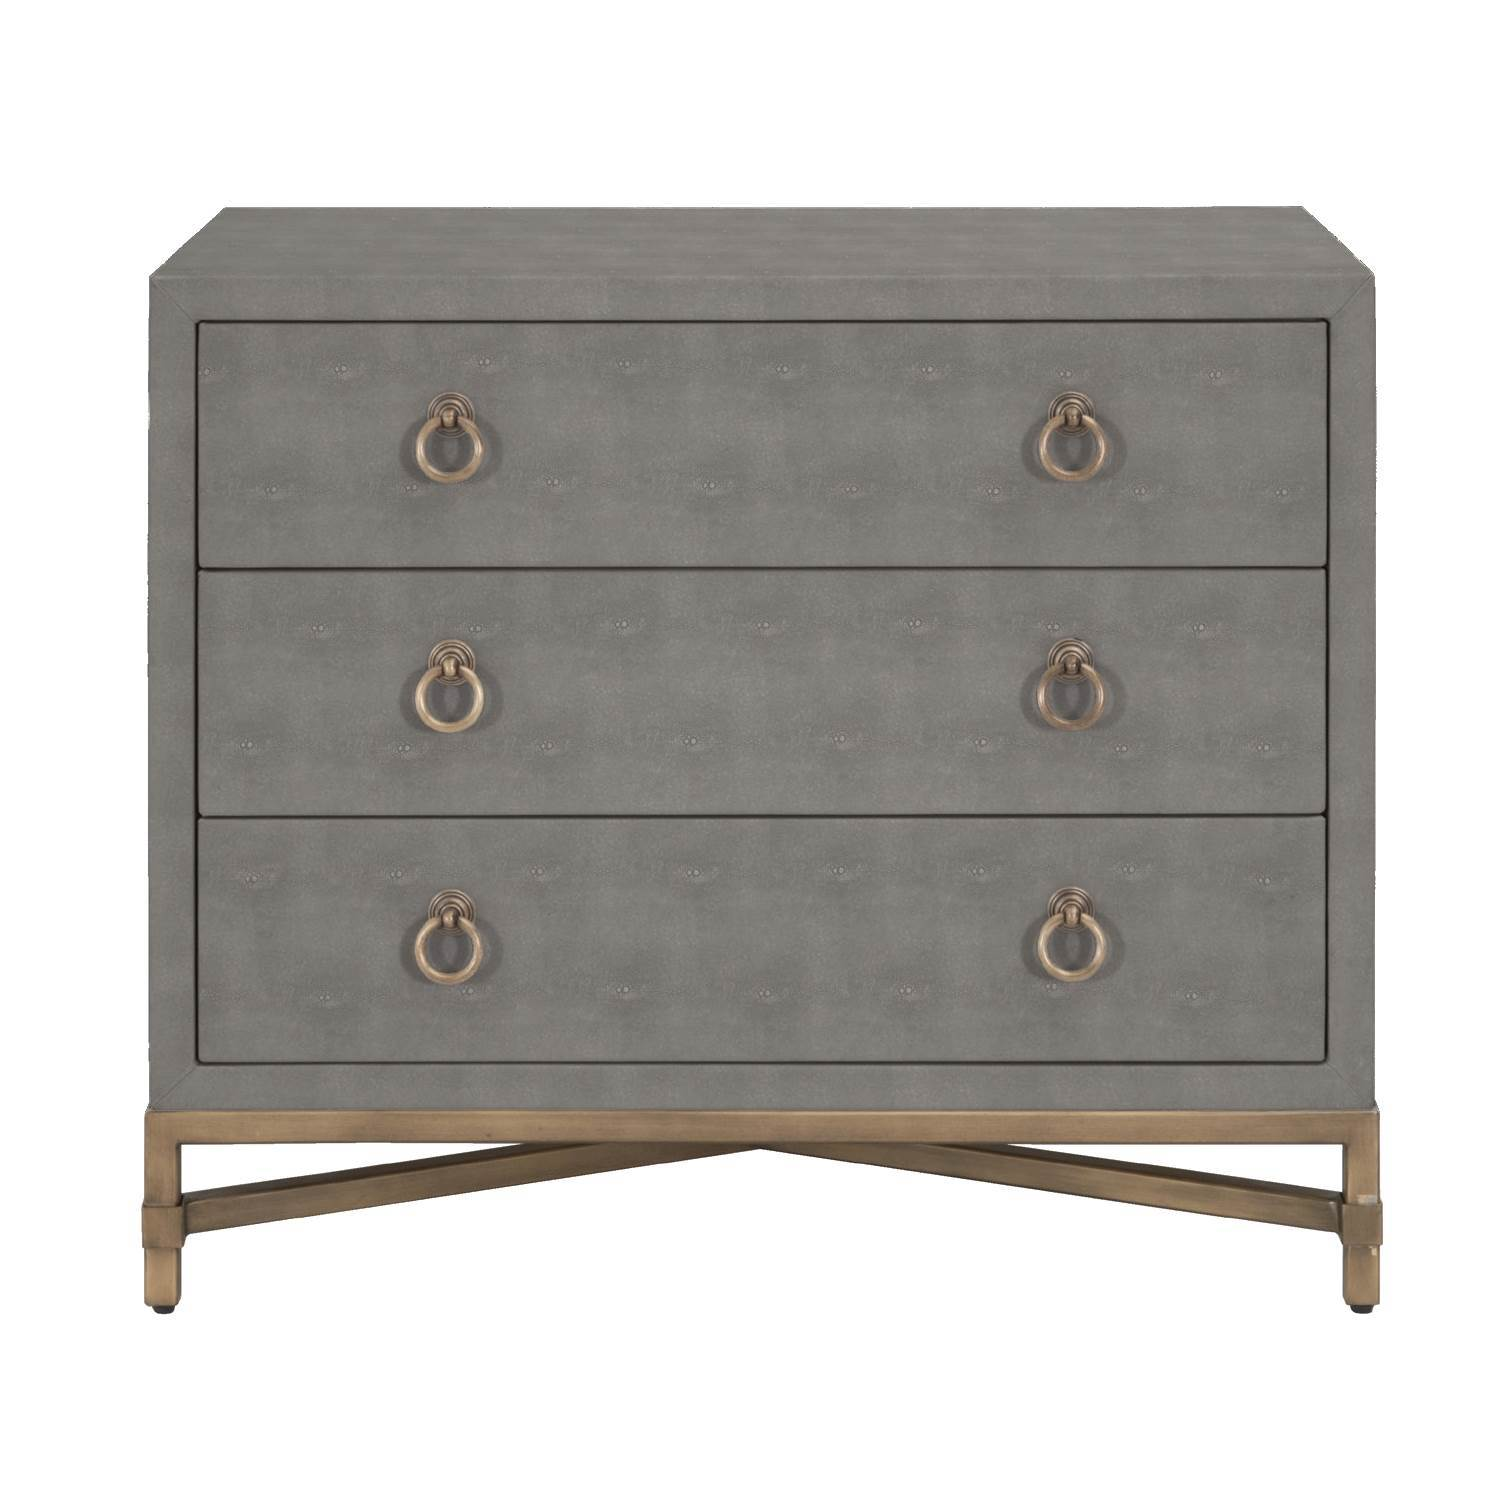 Strand Shagreen 3-Drawer Nightstand in Gray Shagreen